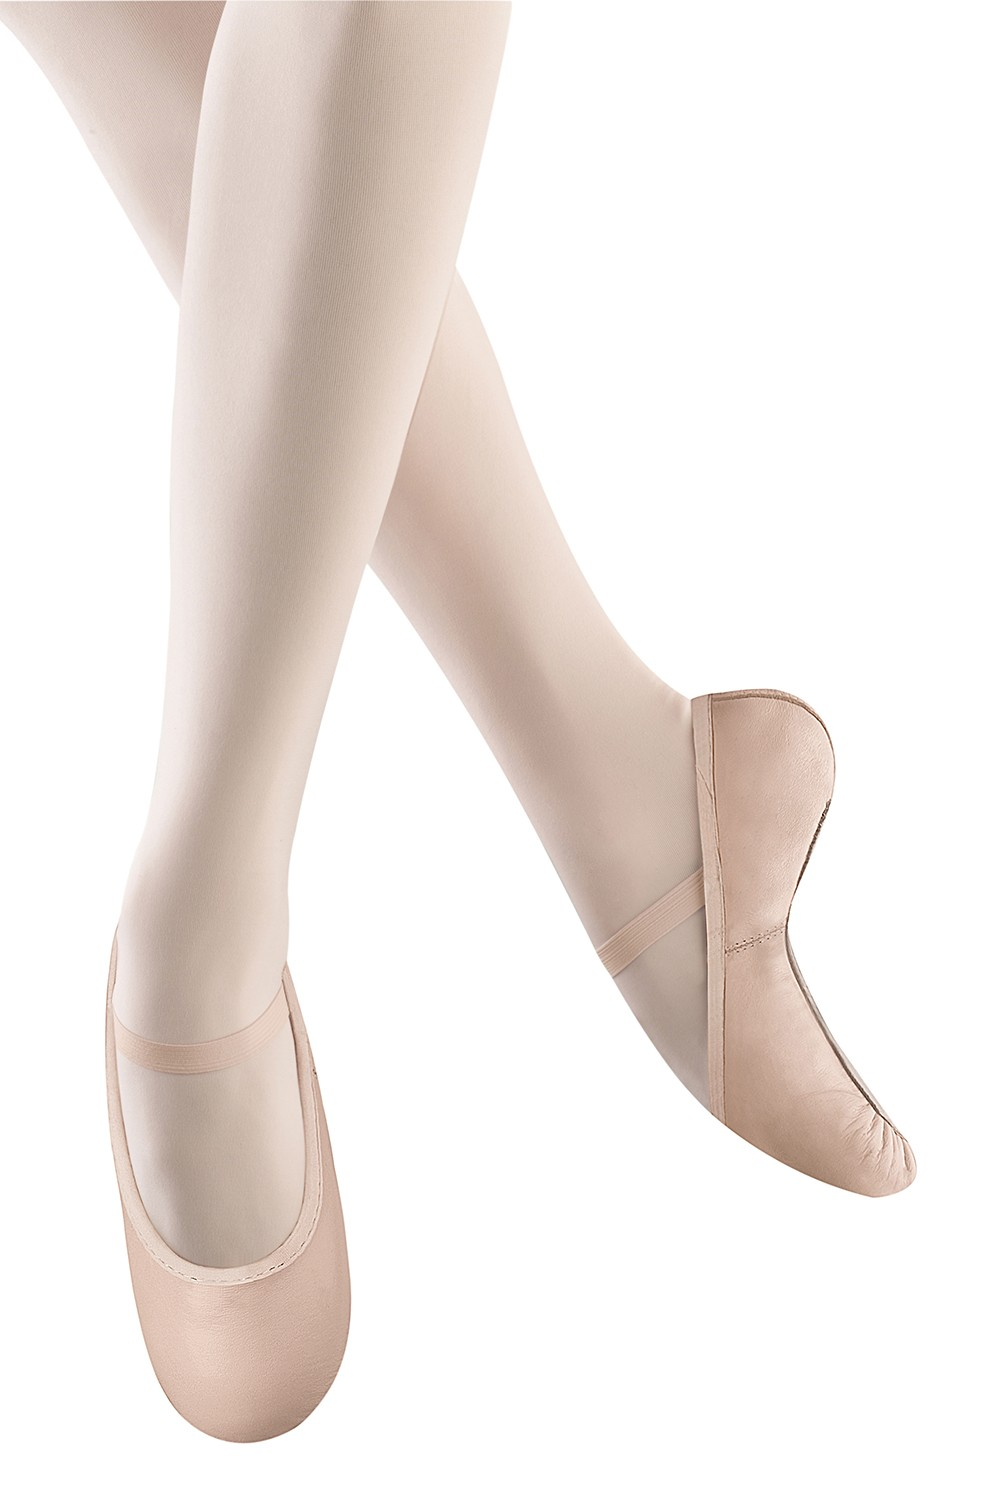 Belle - Fille Girl's Ballet Shoes